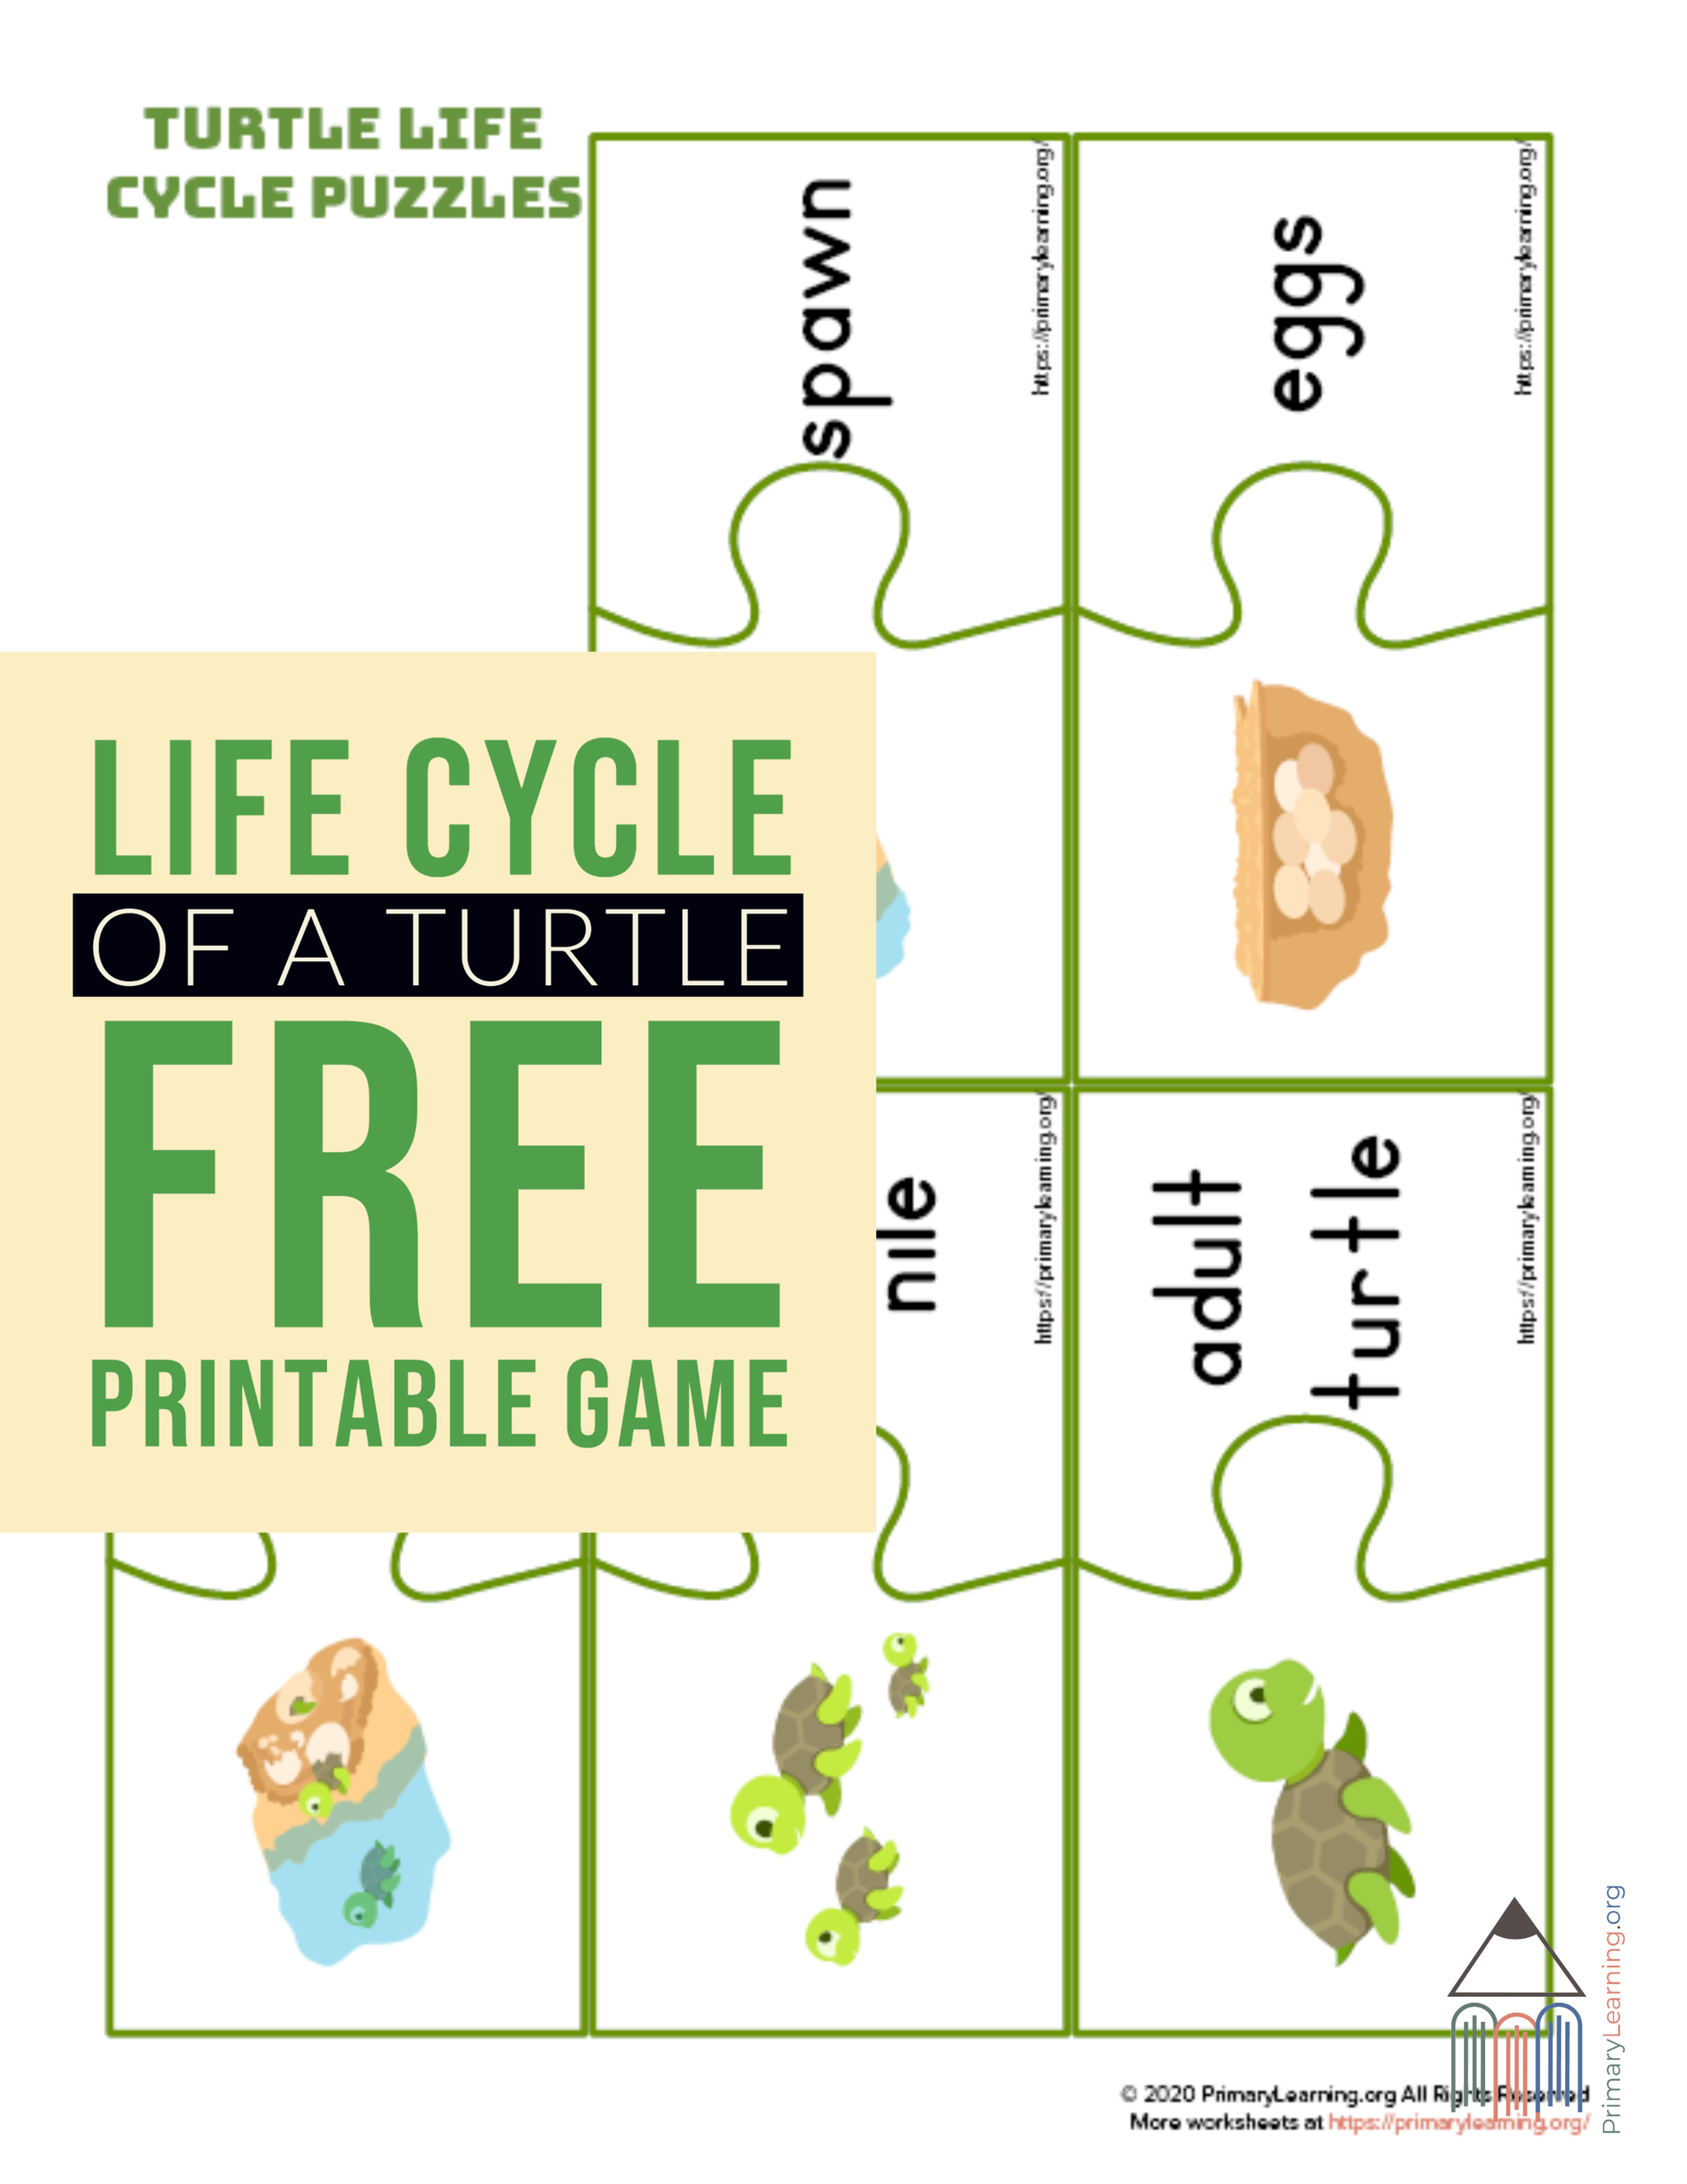 Turtle Life Cycle Puzzles